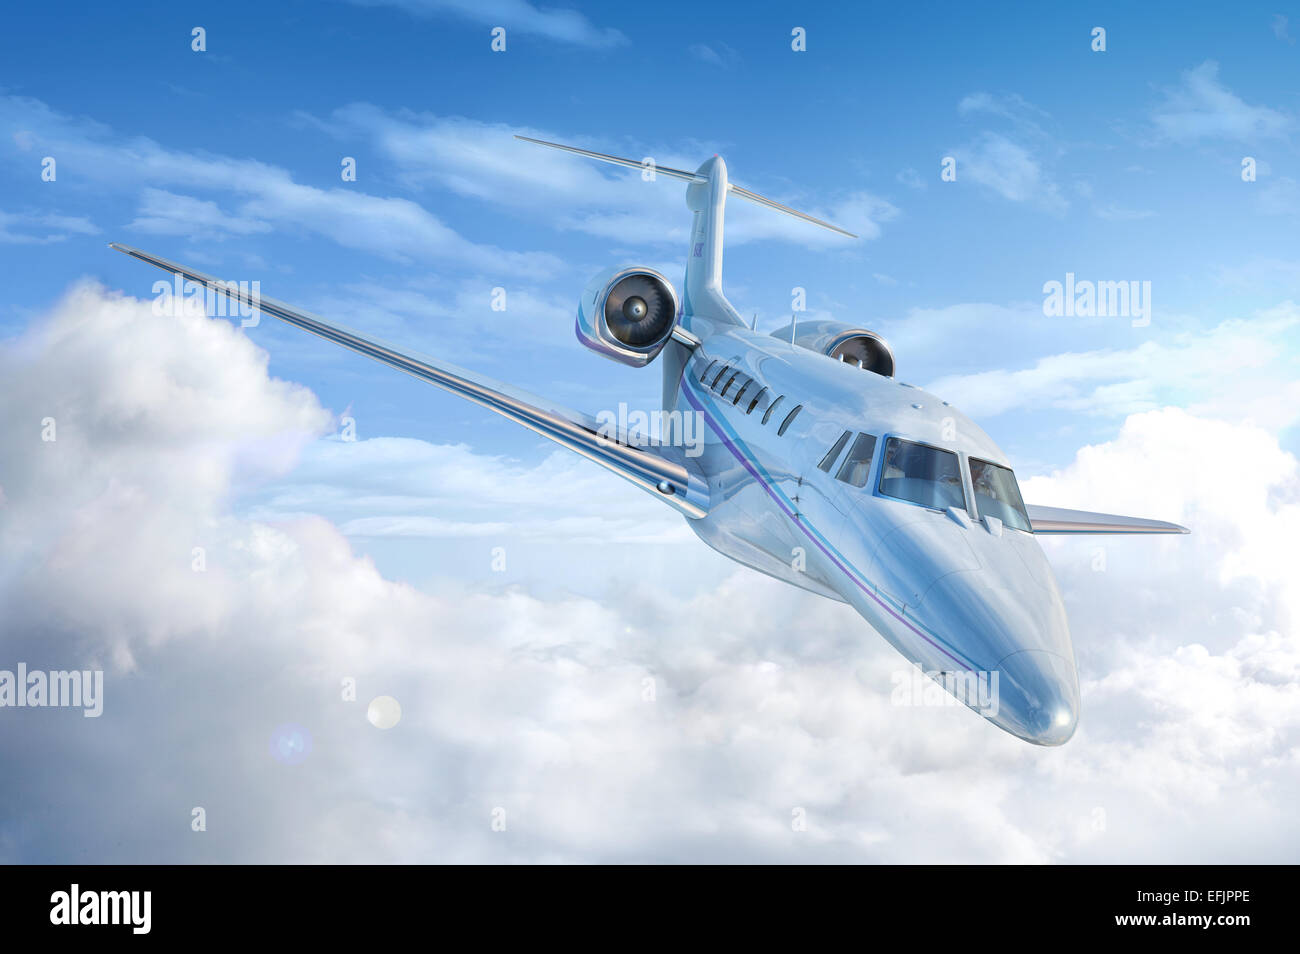 Private Jet airplane flying. Perspective/front view. With sky and clouds background. - Stock Image